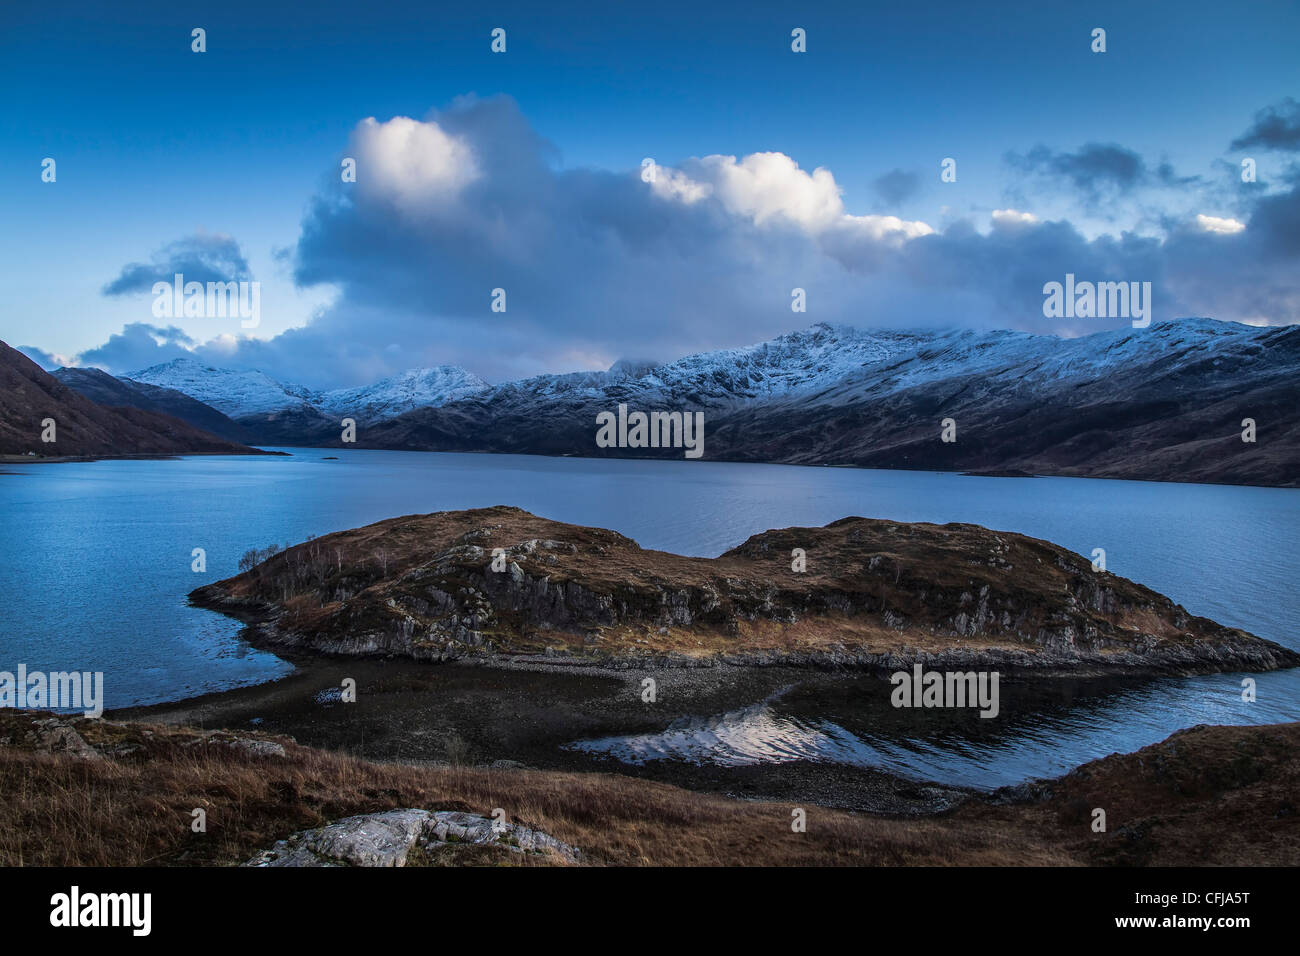 Island in Loch Hourn Arnisdale Scottish Highlands with snow covered mountains of the Isle of Skye in the background - Stock Image